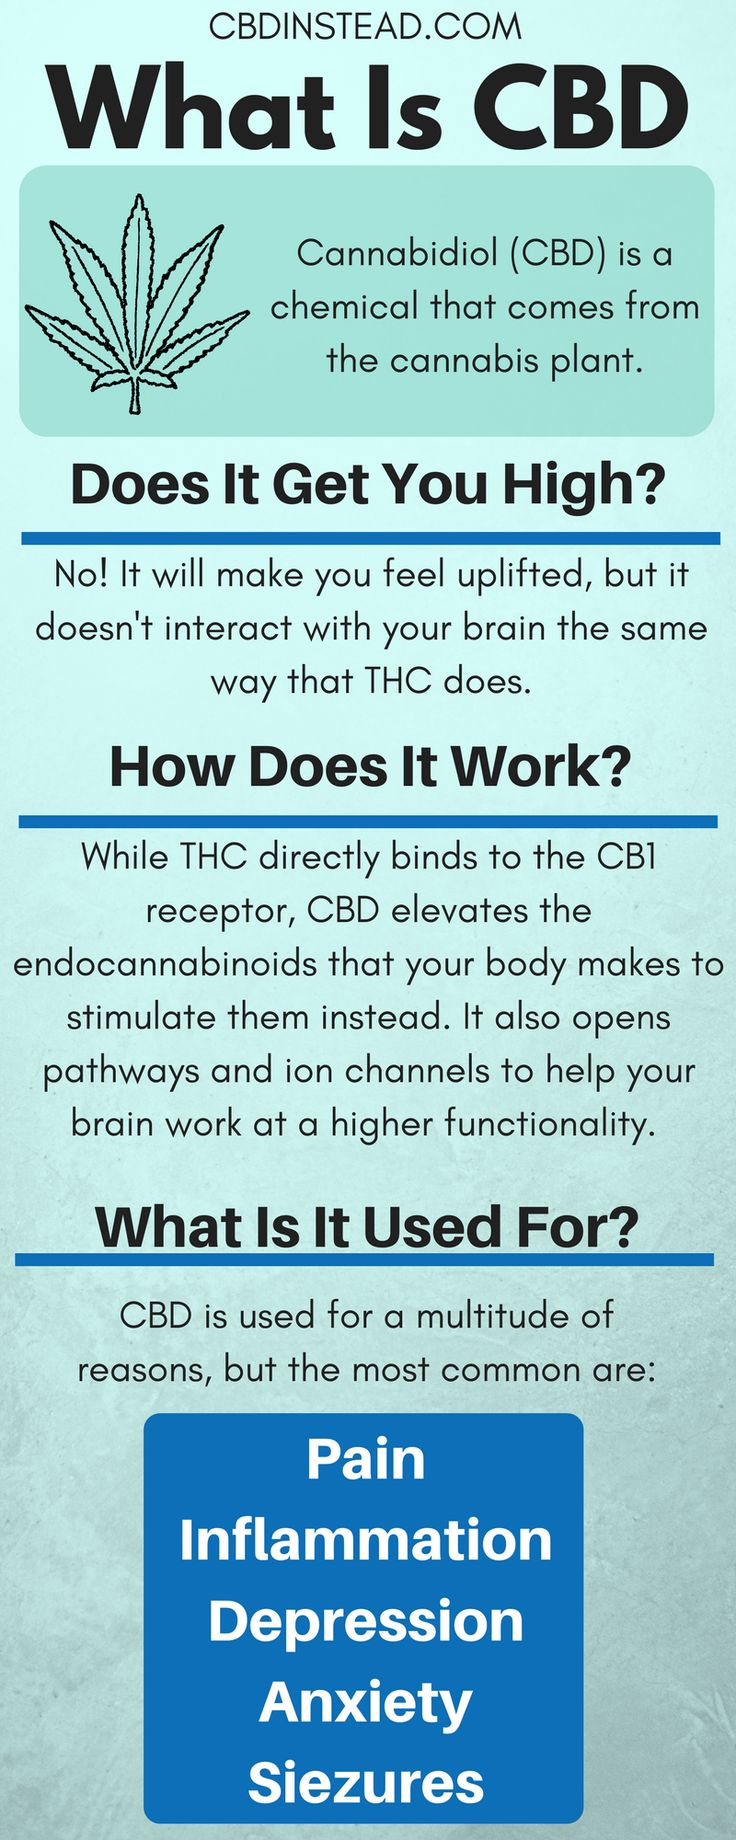 CBD comes from cannabis, but it doesn't get you high. You can learn more about the amazing benefits of CBD at CBDinstead.com! #CBDoil #Medicalmarijuana #Cannabis